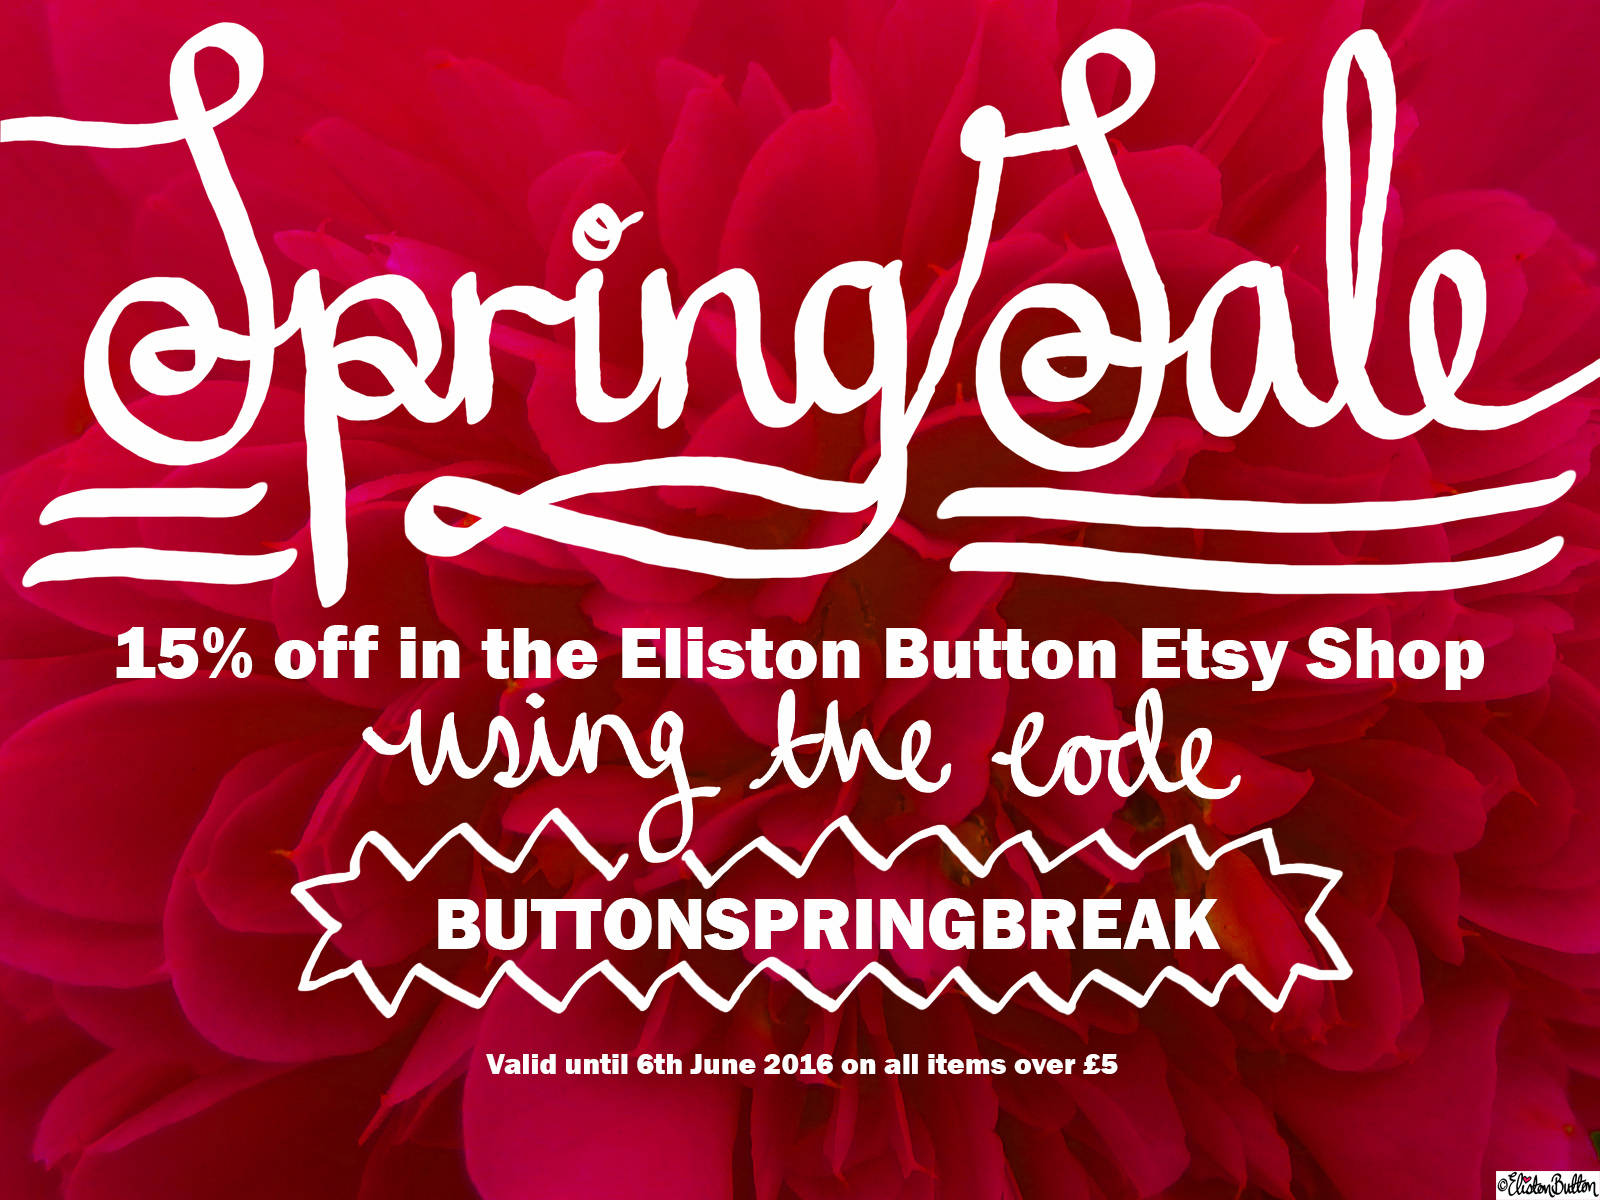 Eliston Button Etsy Shop Spring Sale Promotion - 15% off over £5 until 6th June 2016! - Spring Break Unplugged (Plus a Special Treat!) at www.elistonbutton.com - Eliston Button - That Crafty Kid – Art, Design, Craft & Adventure.